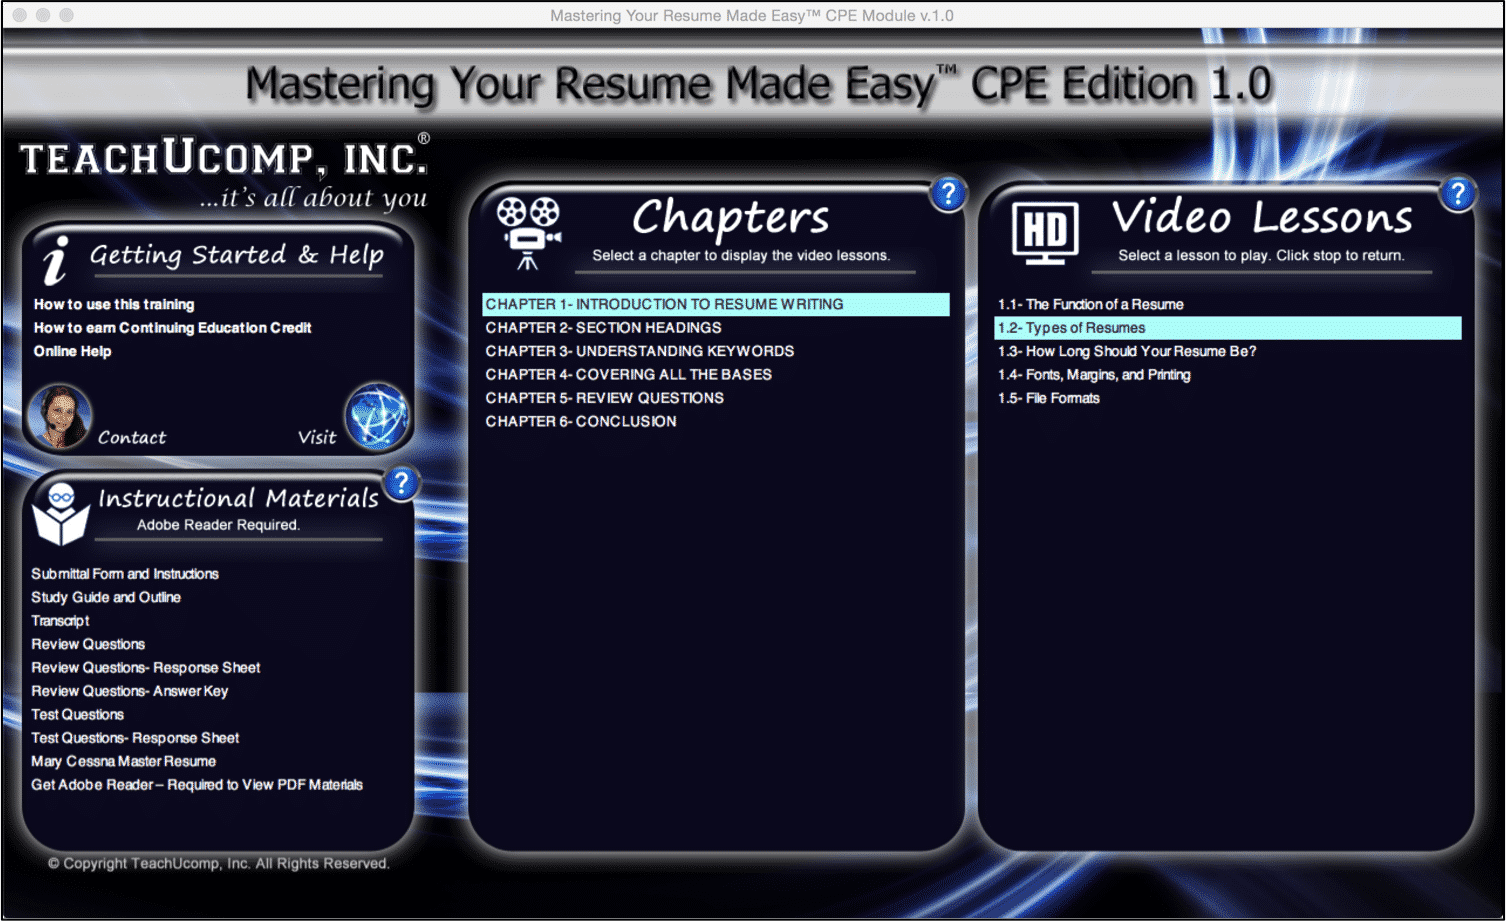 Types Of Resumes  A Tutorial: A Picture Of The Training Interface From Our  Resume